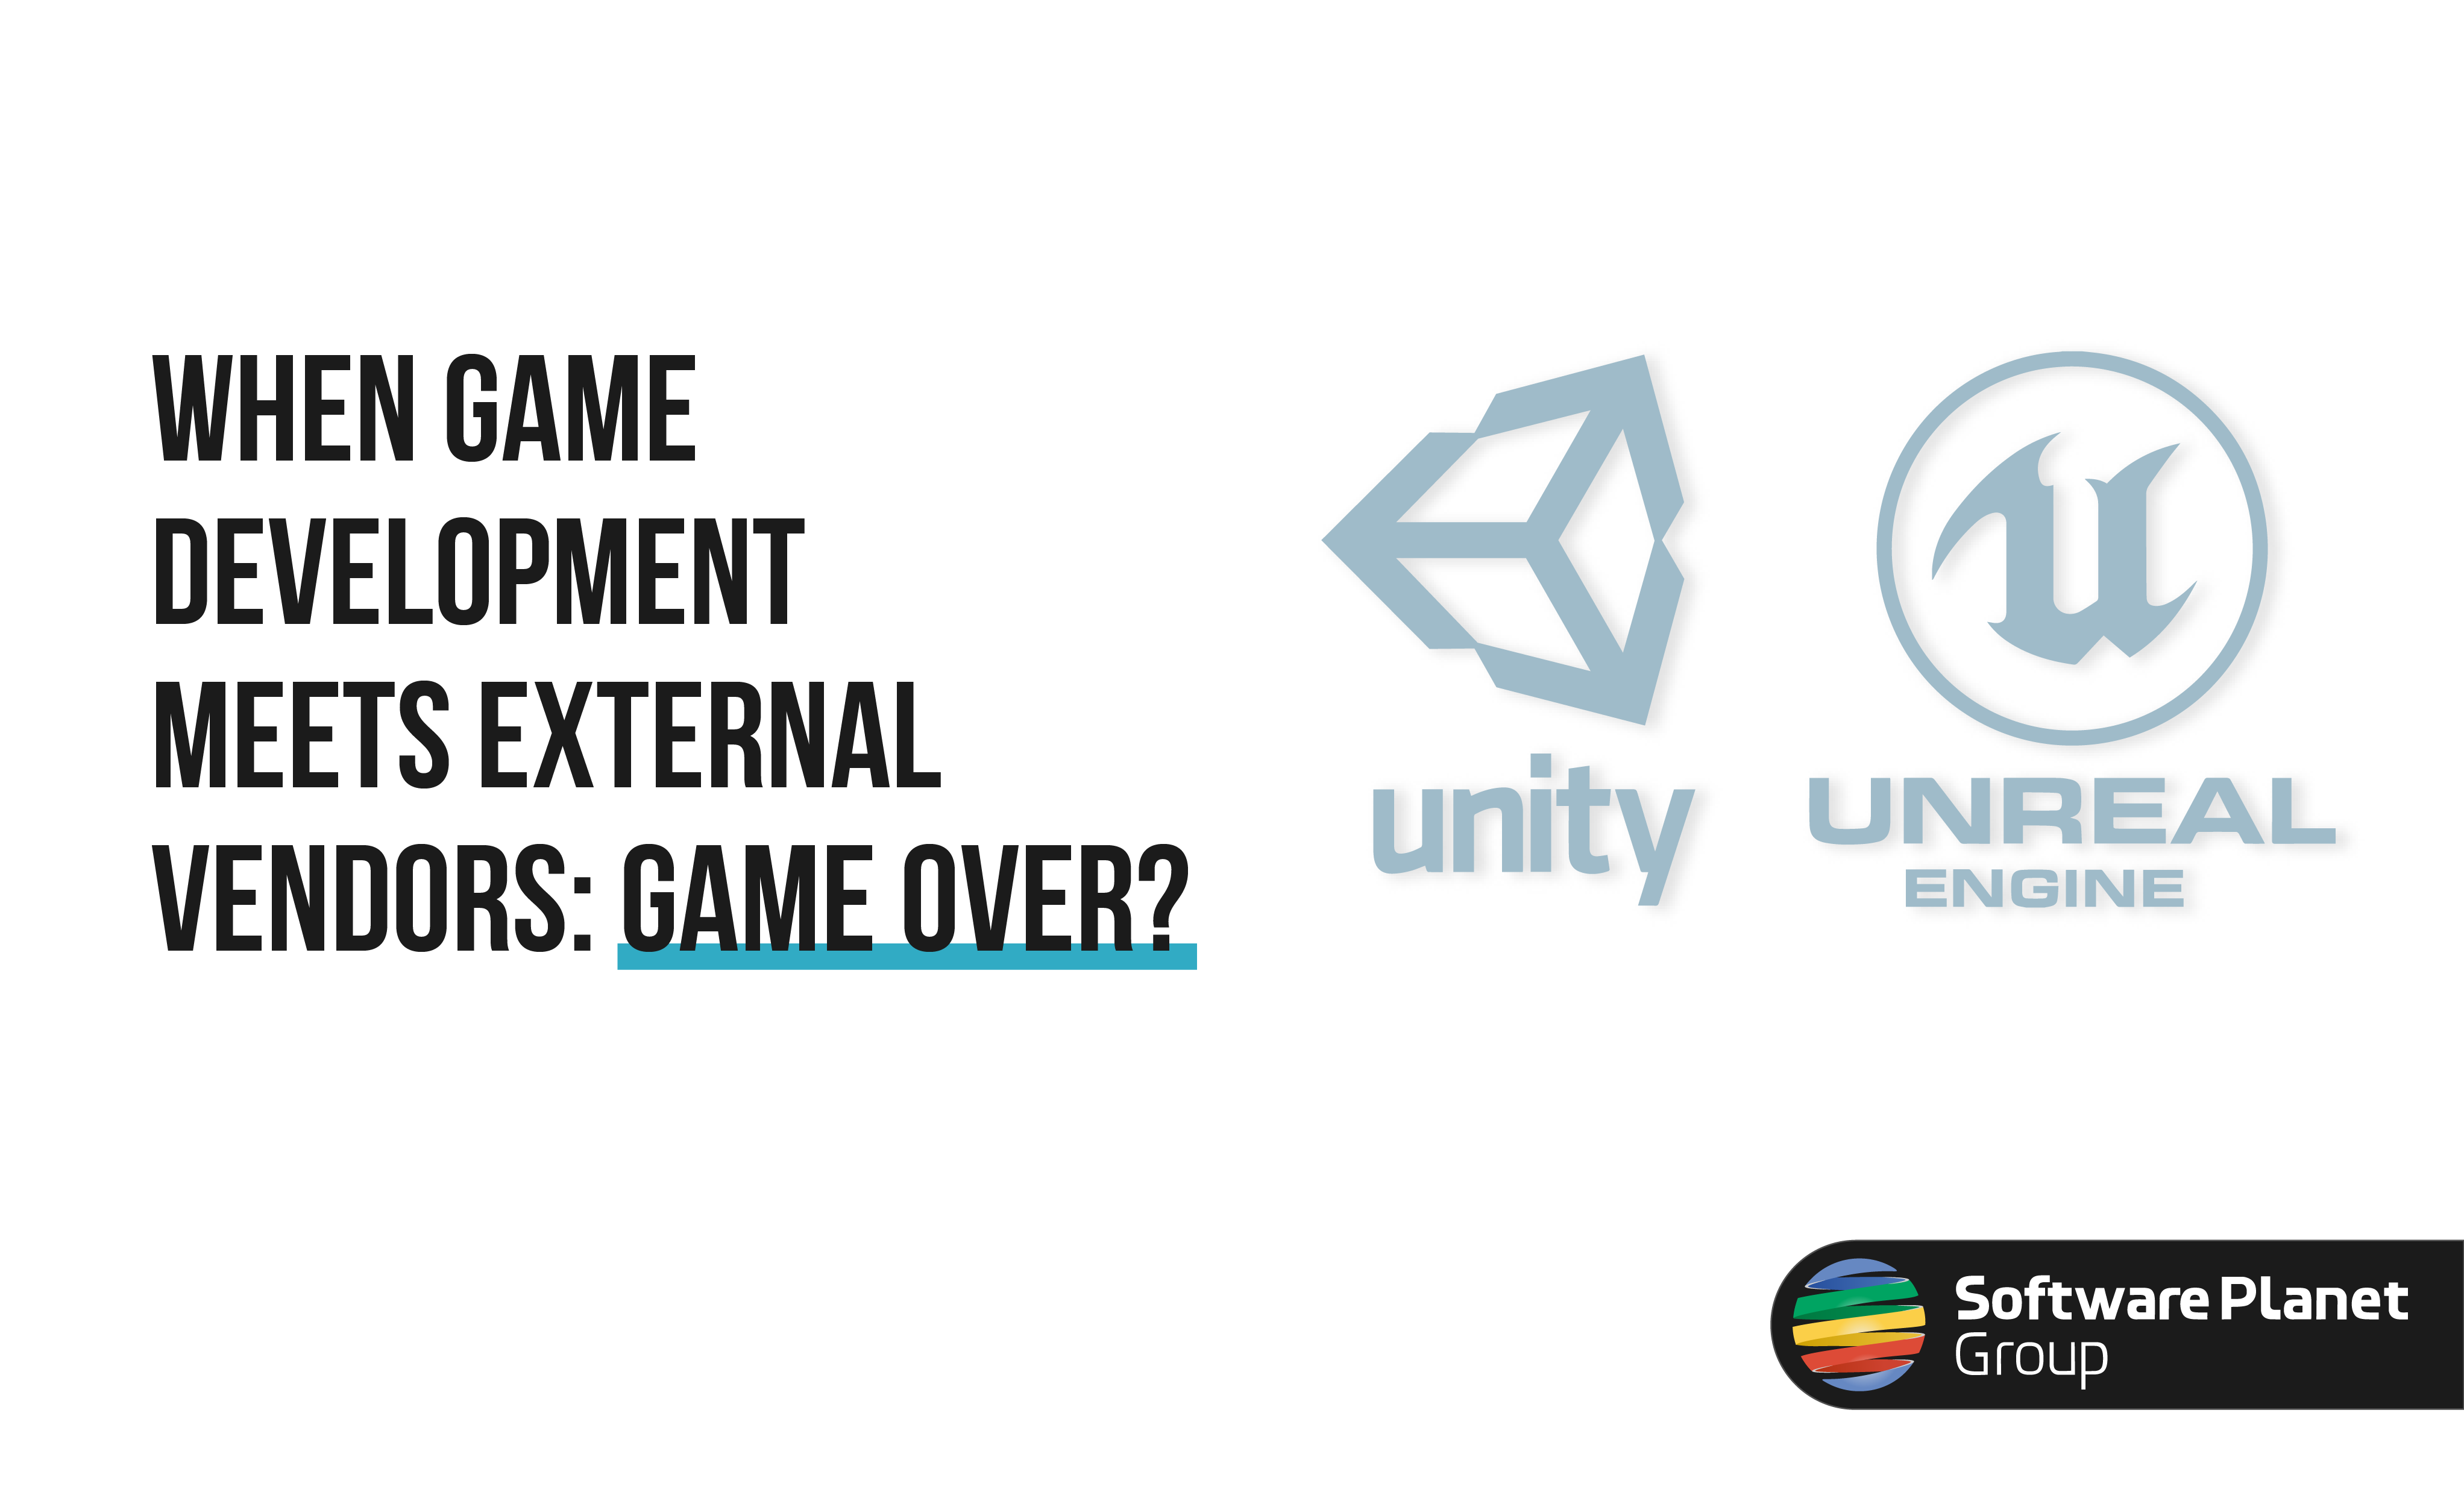 When Game Development Meets External Vendors: Game Over